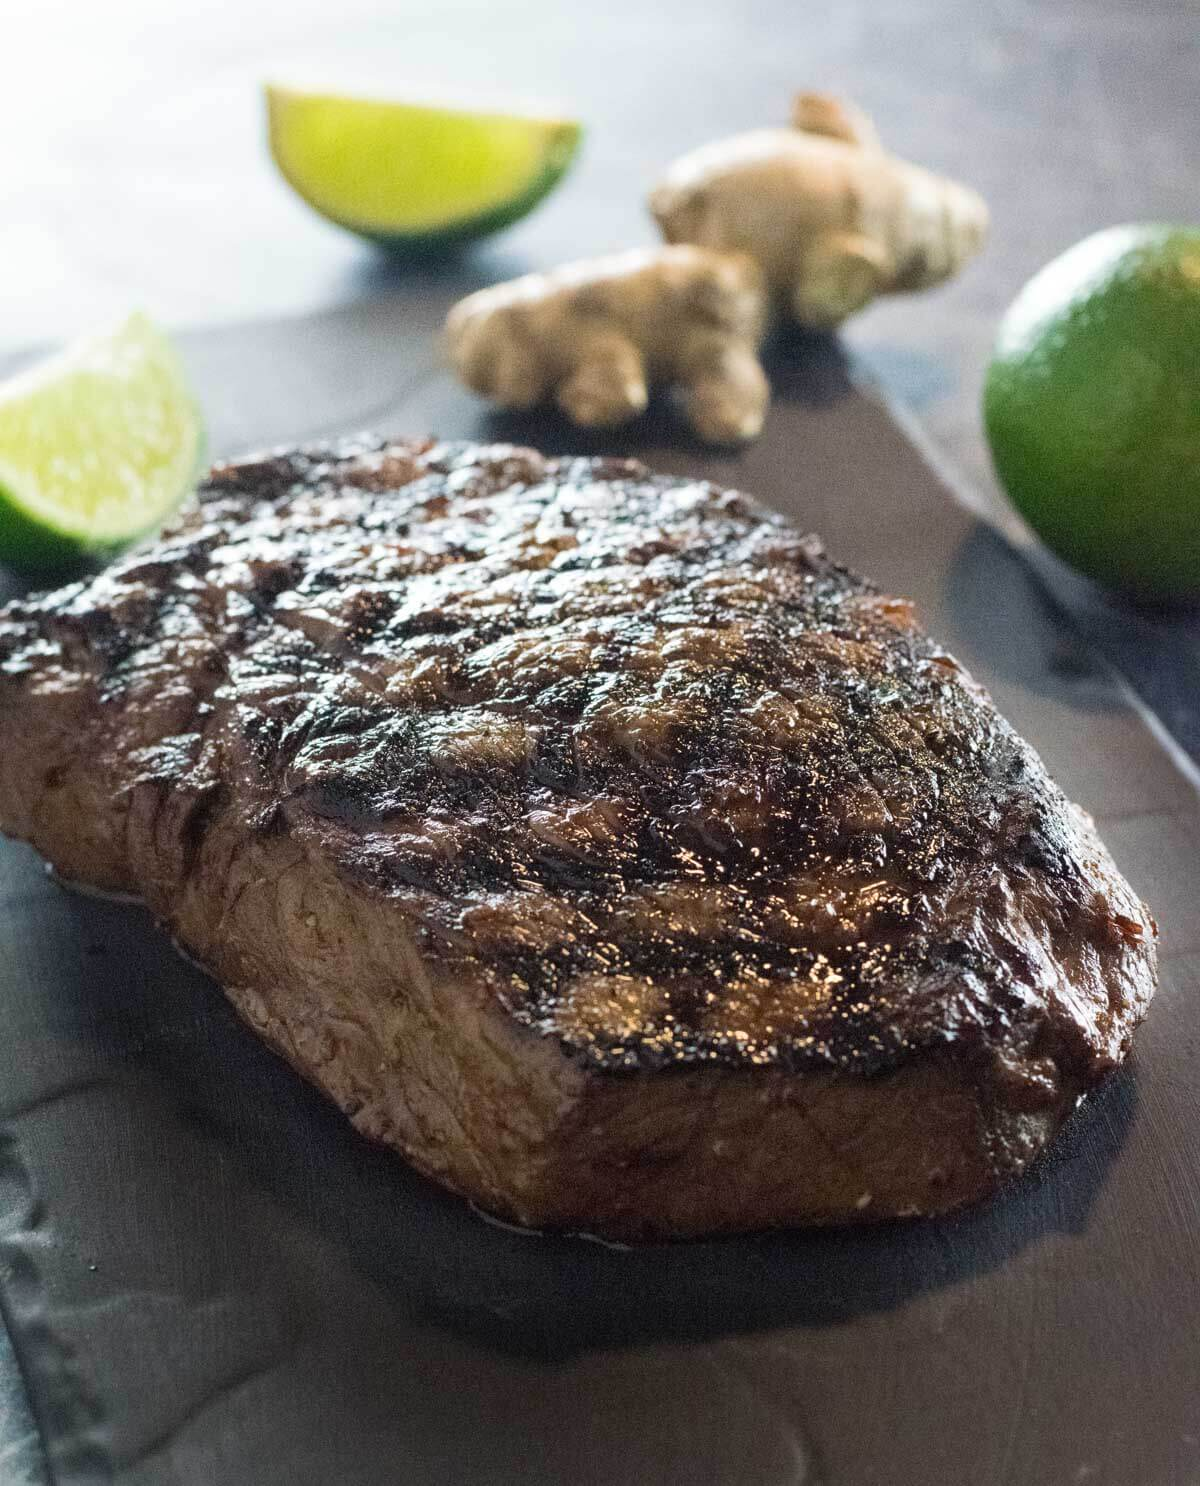 Grilled steak marinated in Asian flavors.